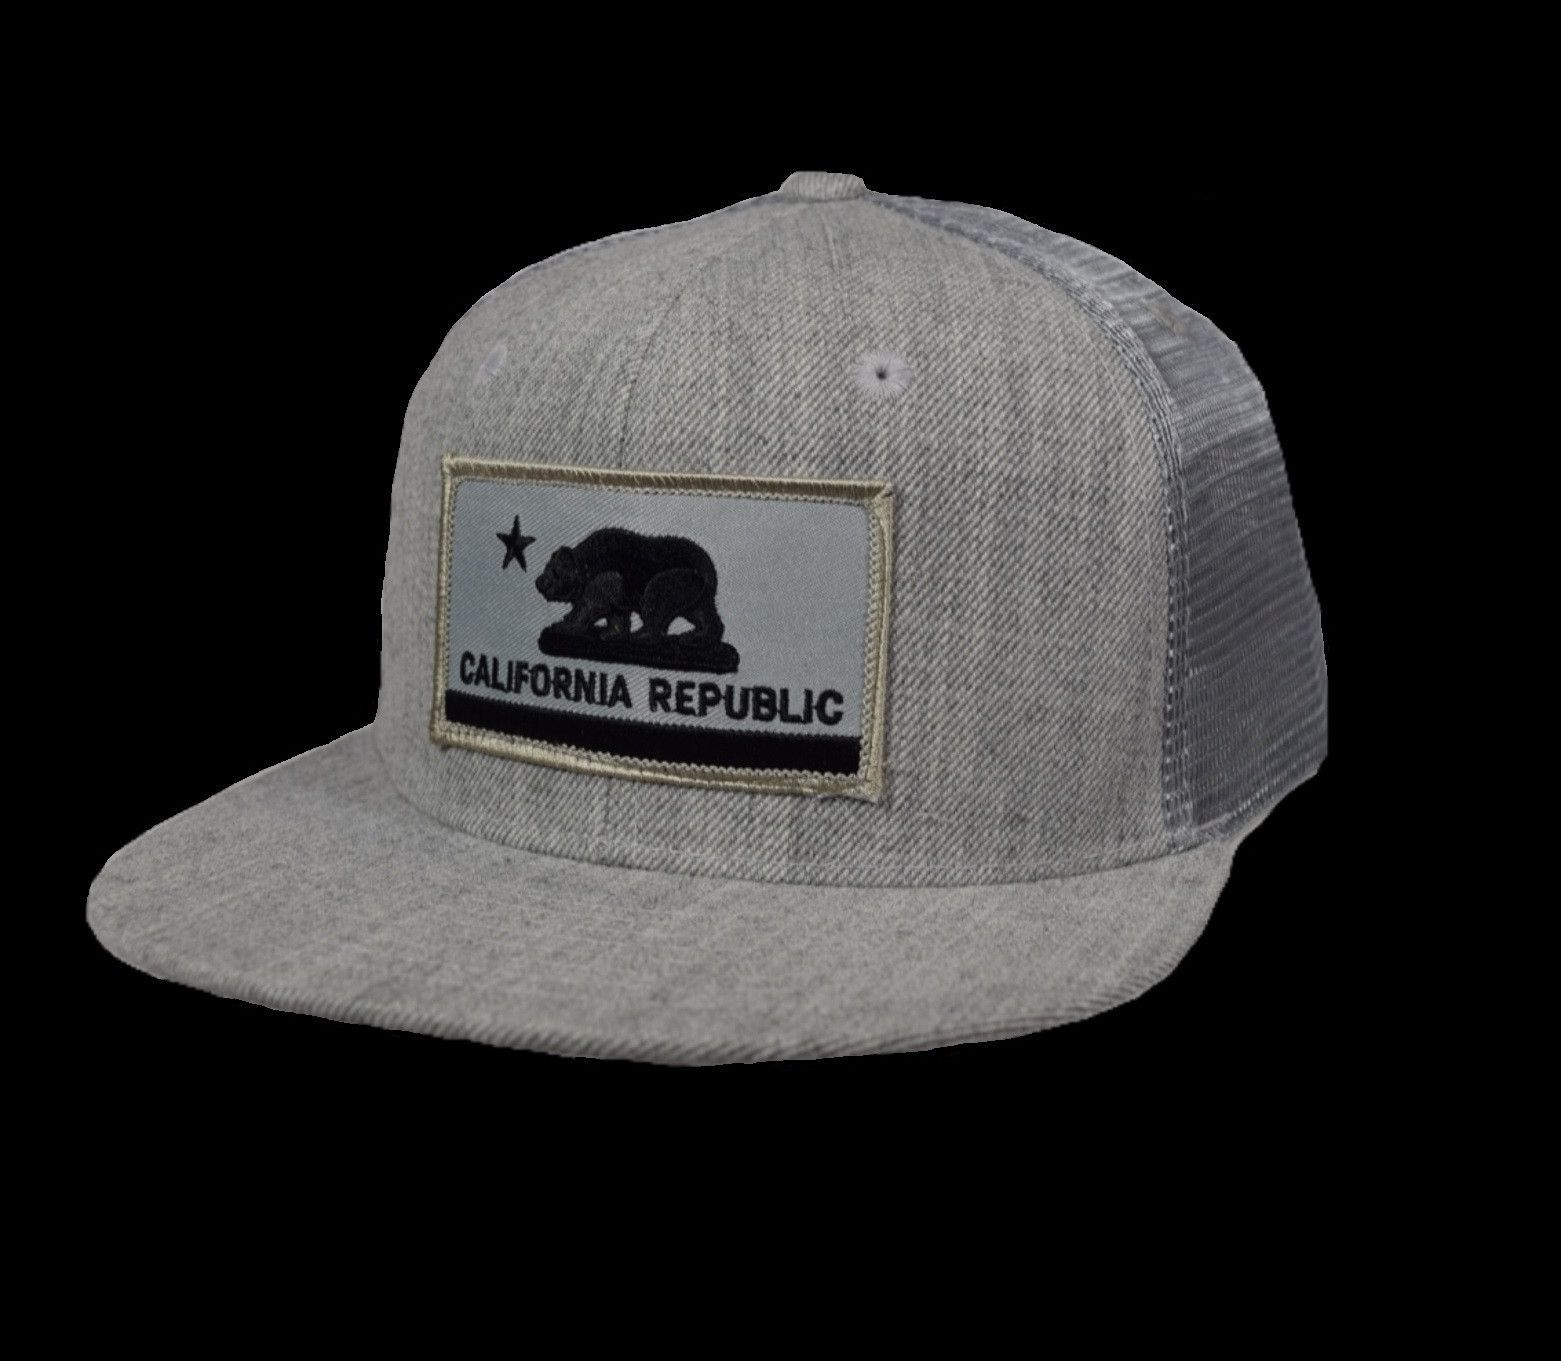 6681d5581af25 California Republic Flag Trucker Hat by LET S BE IRIE - Heather Gray ...